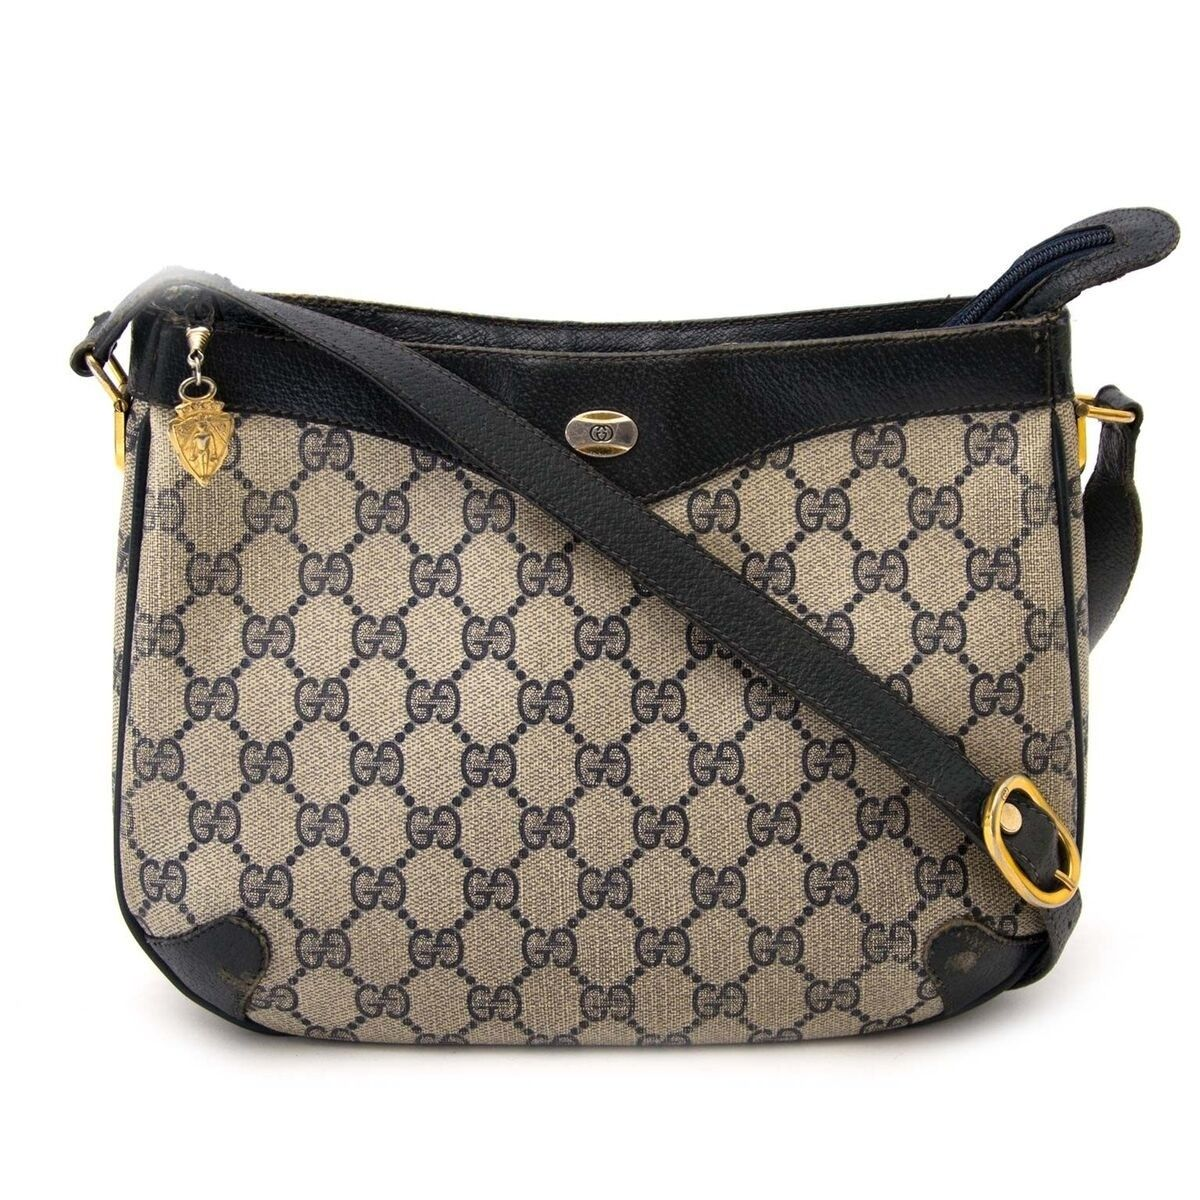 92431bc4be78 Buy an authentic secondhand Gucci bag at the right price at LabelLOV vintage  webshop. Safe